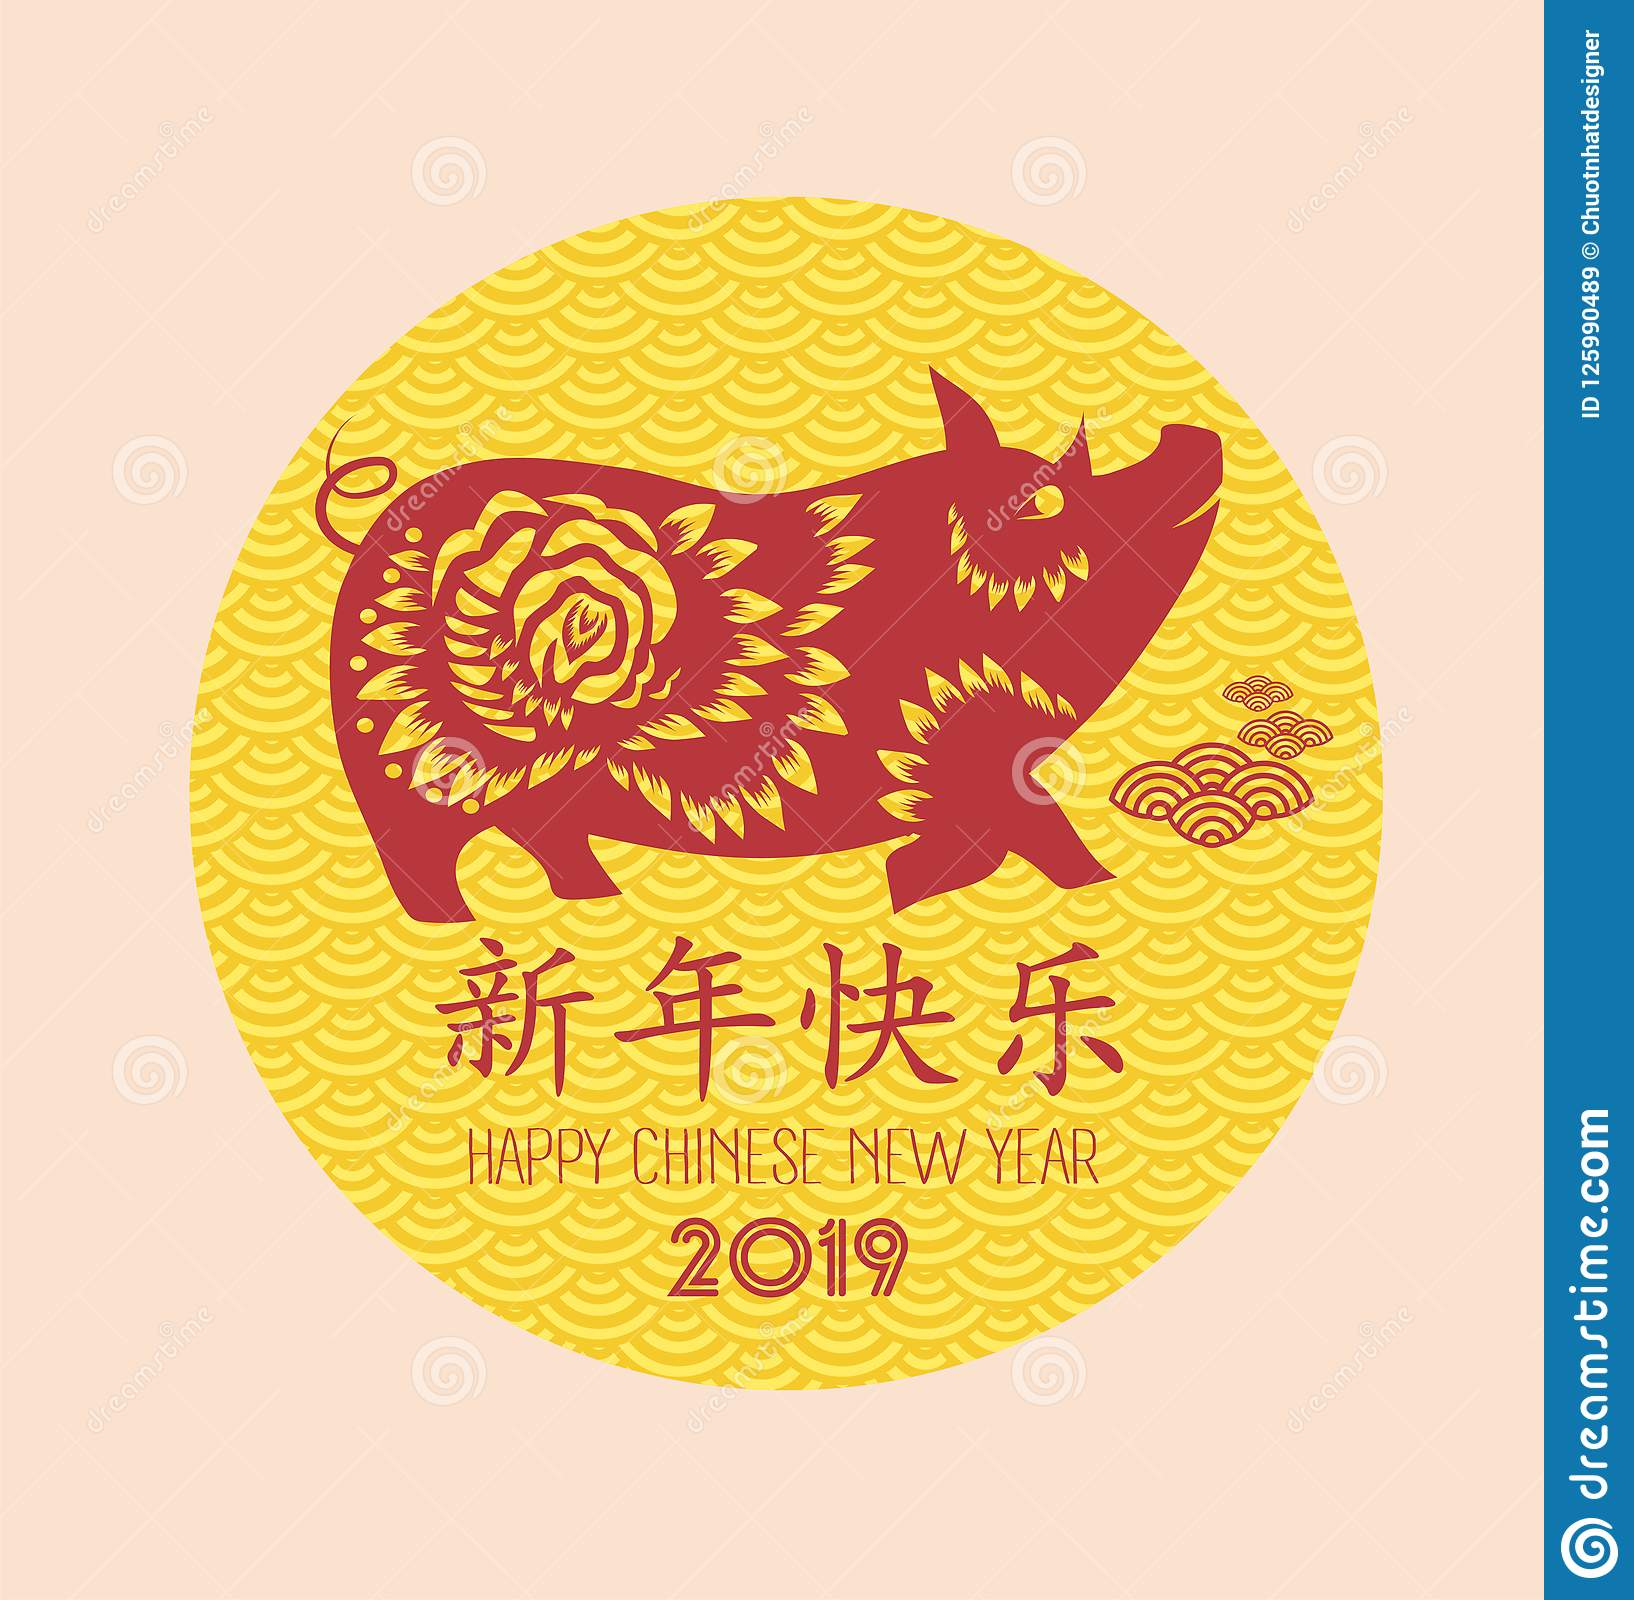 download chinese new year 2019 stamp background chinese characters mean happy new year year